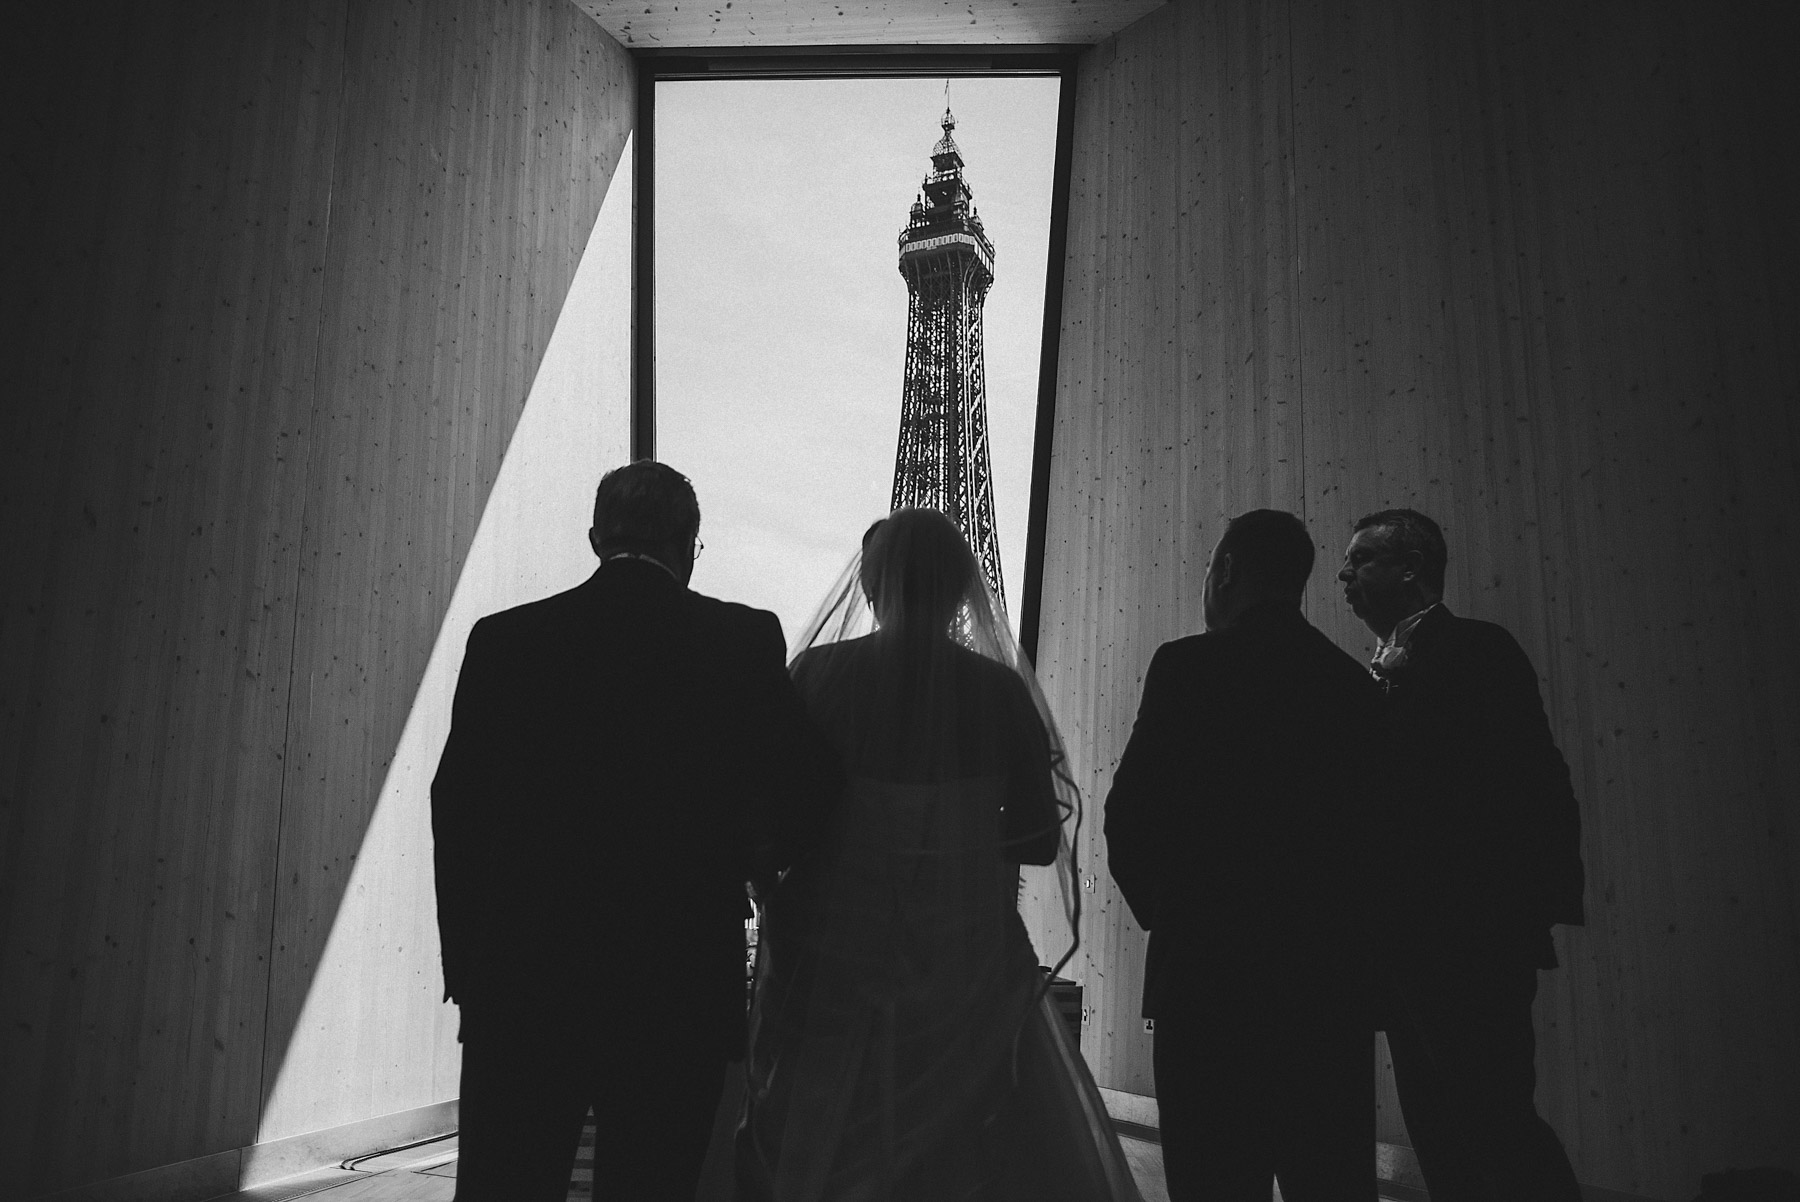 Wedding ceremony with Blackpool tower in the background